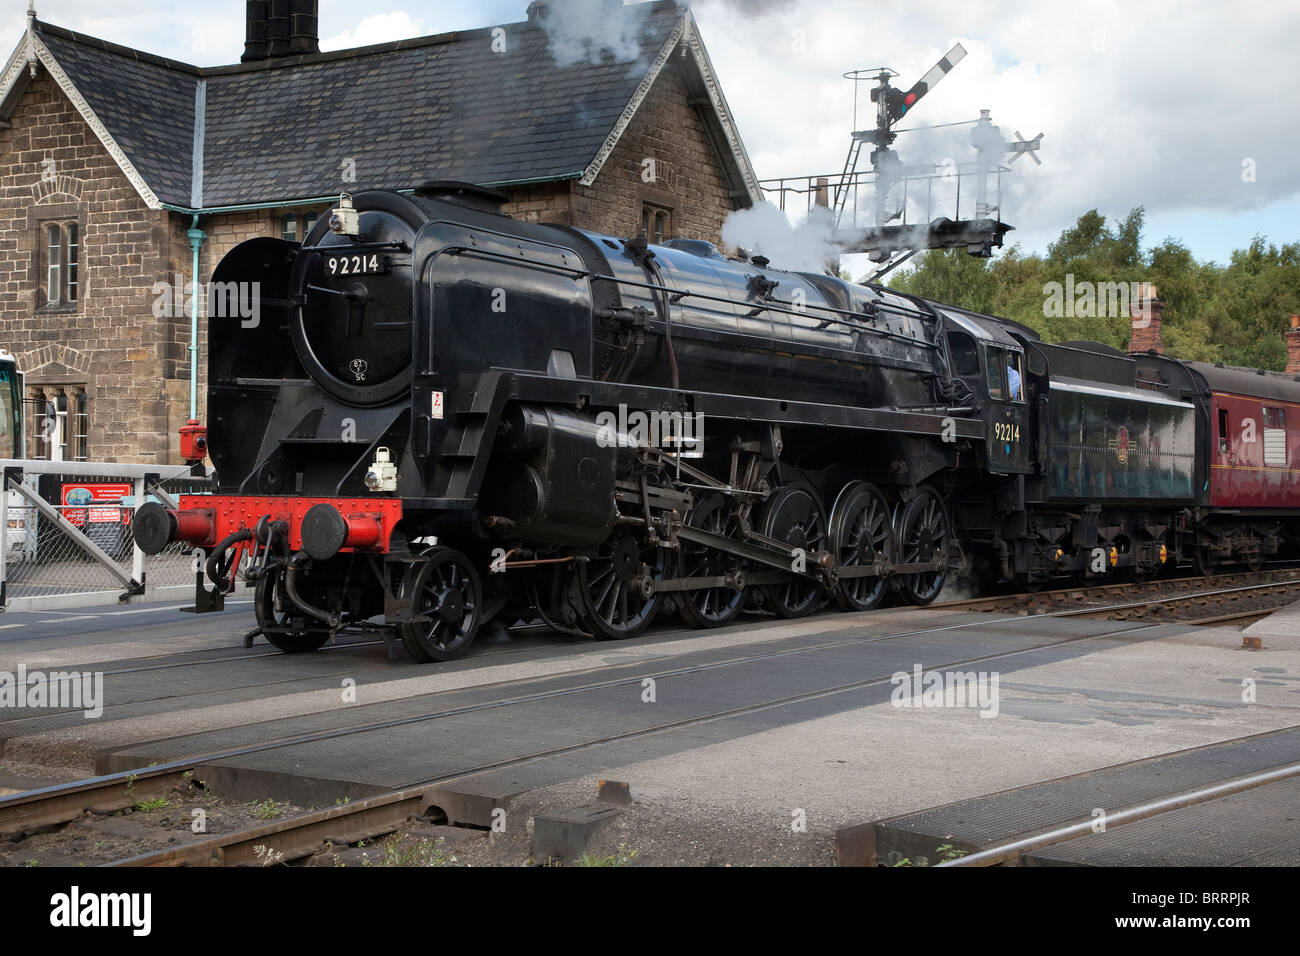 BR 2-10-0 Class 9F 92214 Steam Engine leaving Grosmont Station, North York Moors Historic Railway - Stock Image